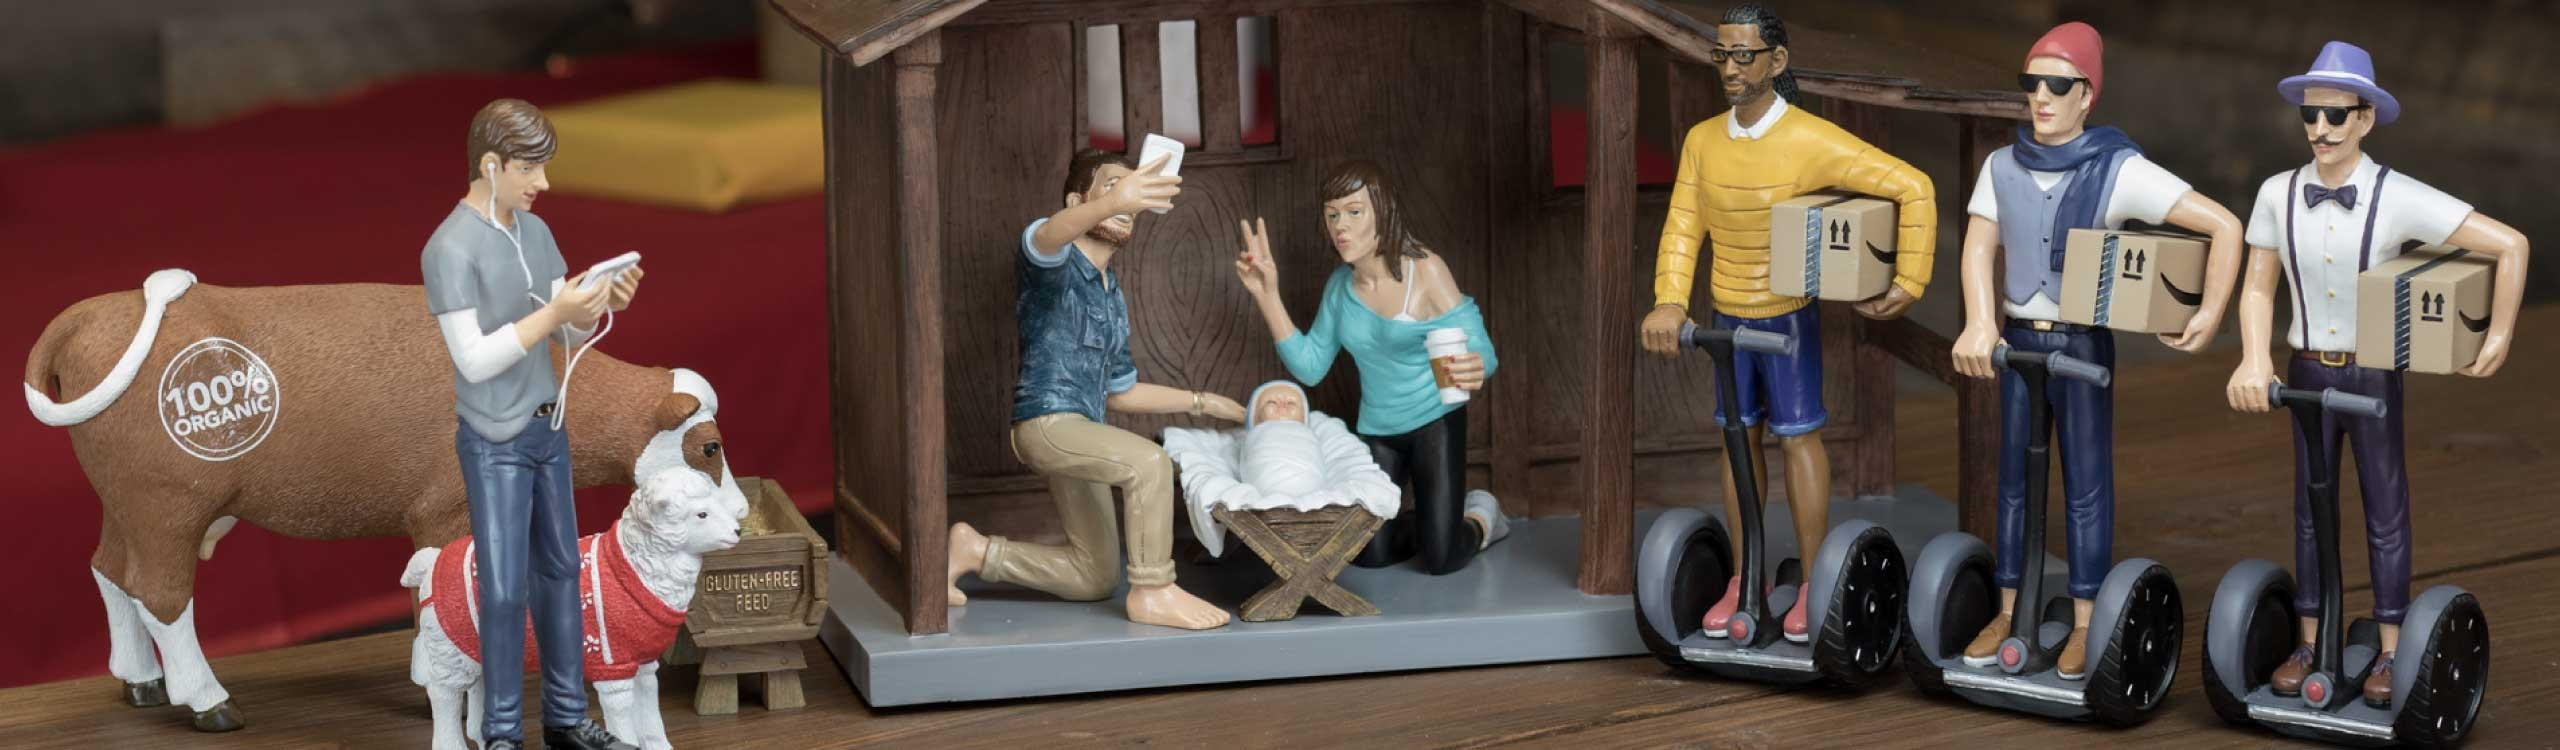 hipster-nativity-mis-gafas-de-pasta-destacado